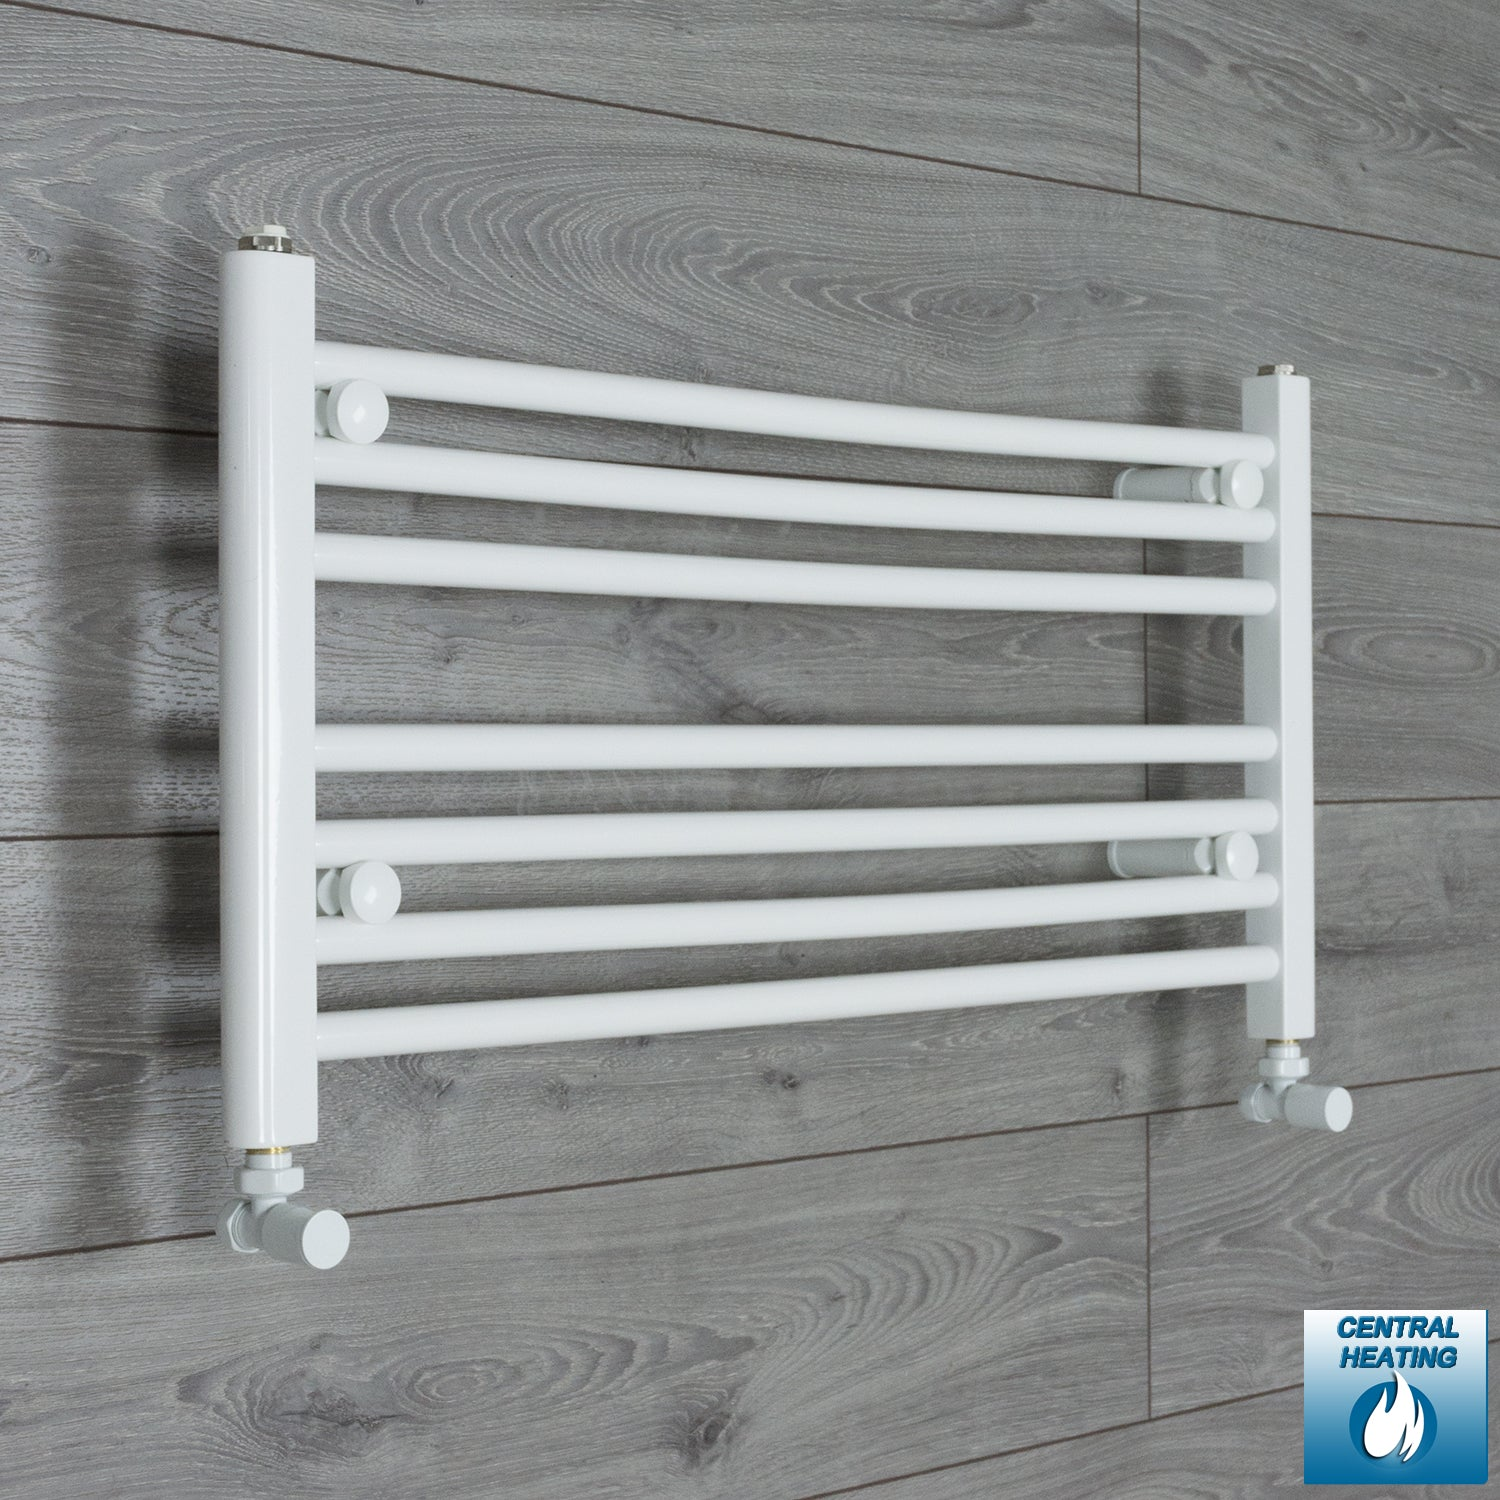 900mm Wide 400mm High White Towel Rail Radiator With Angled Valve